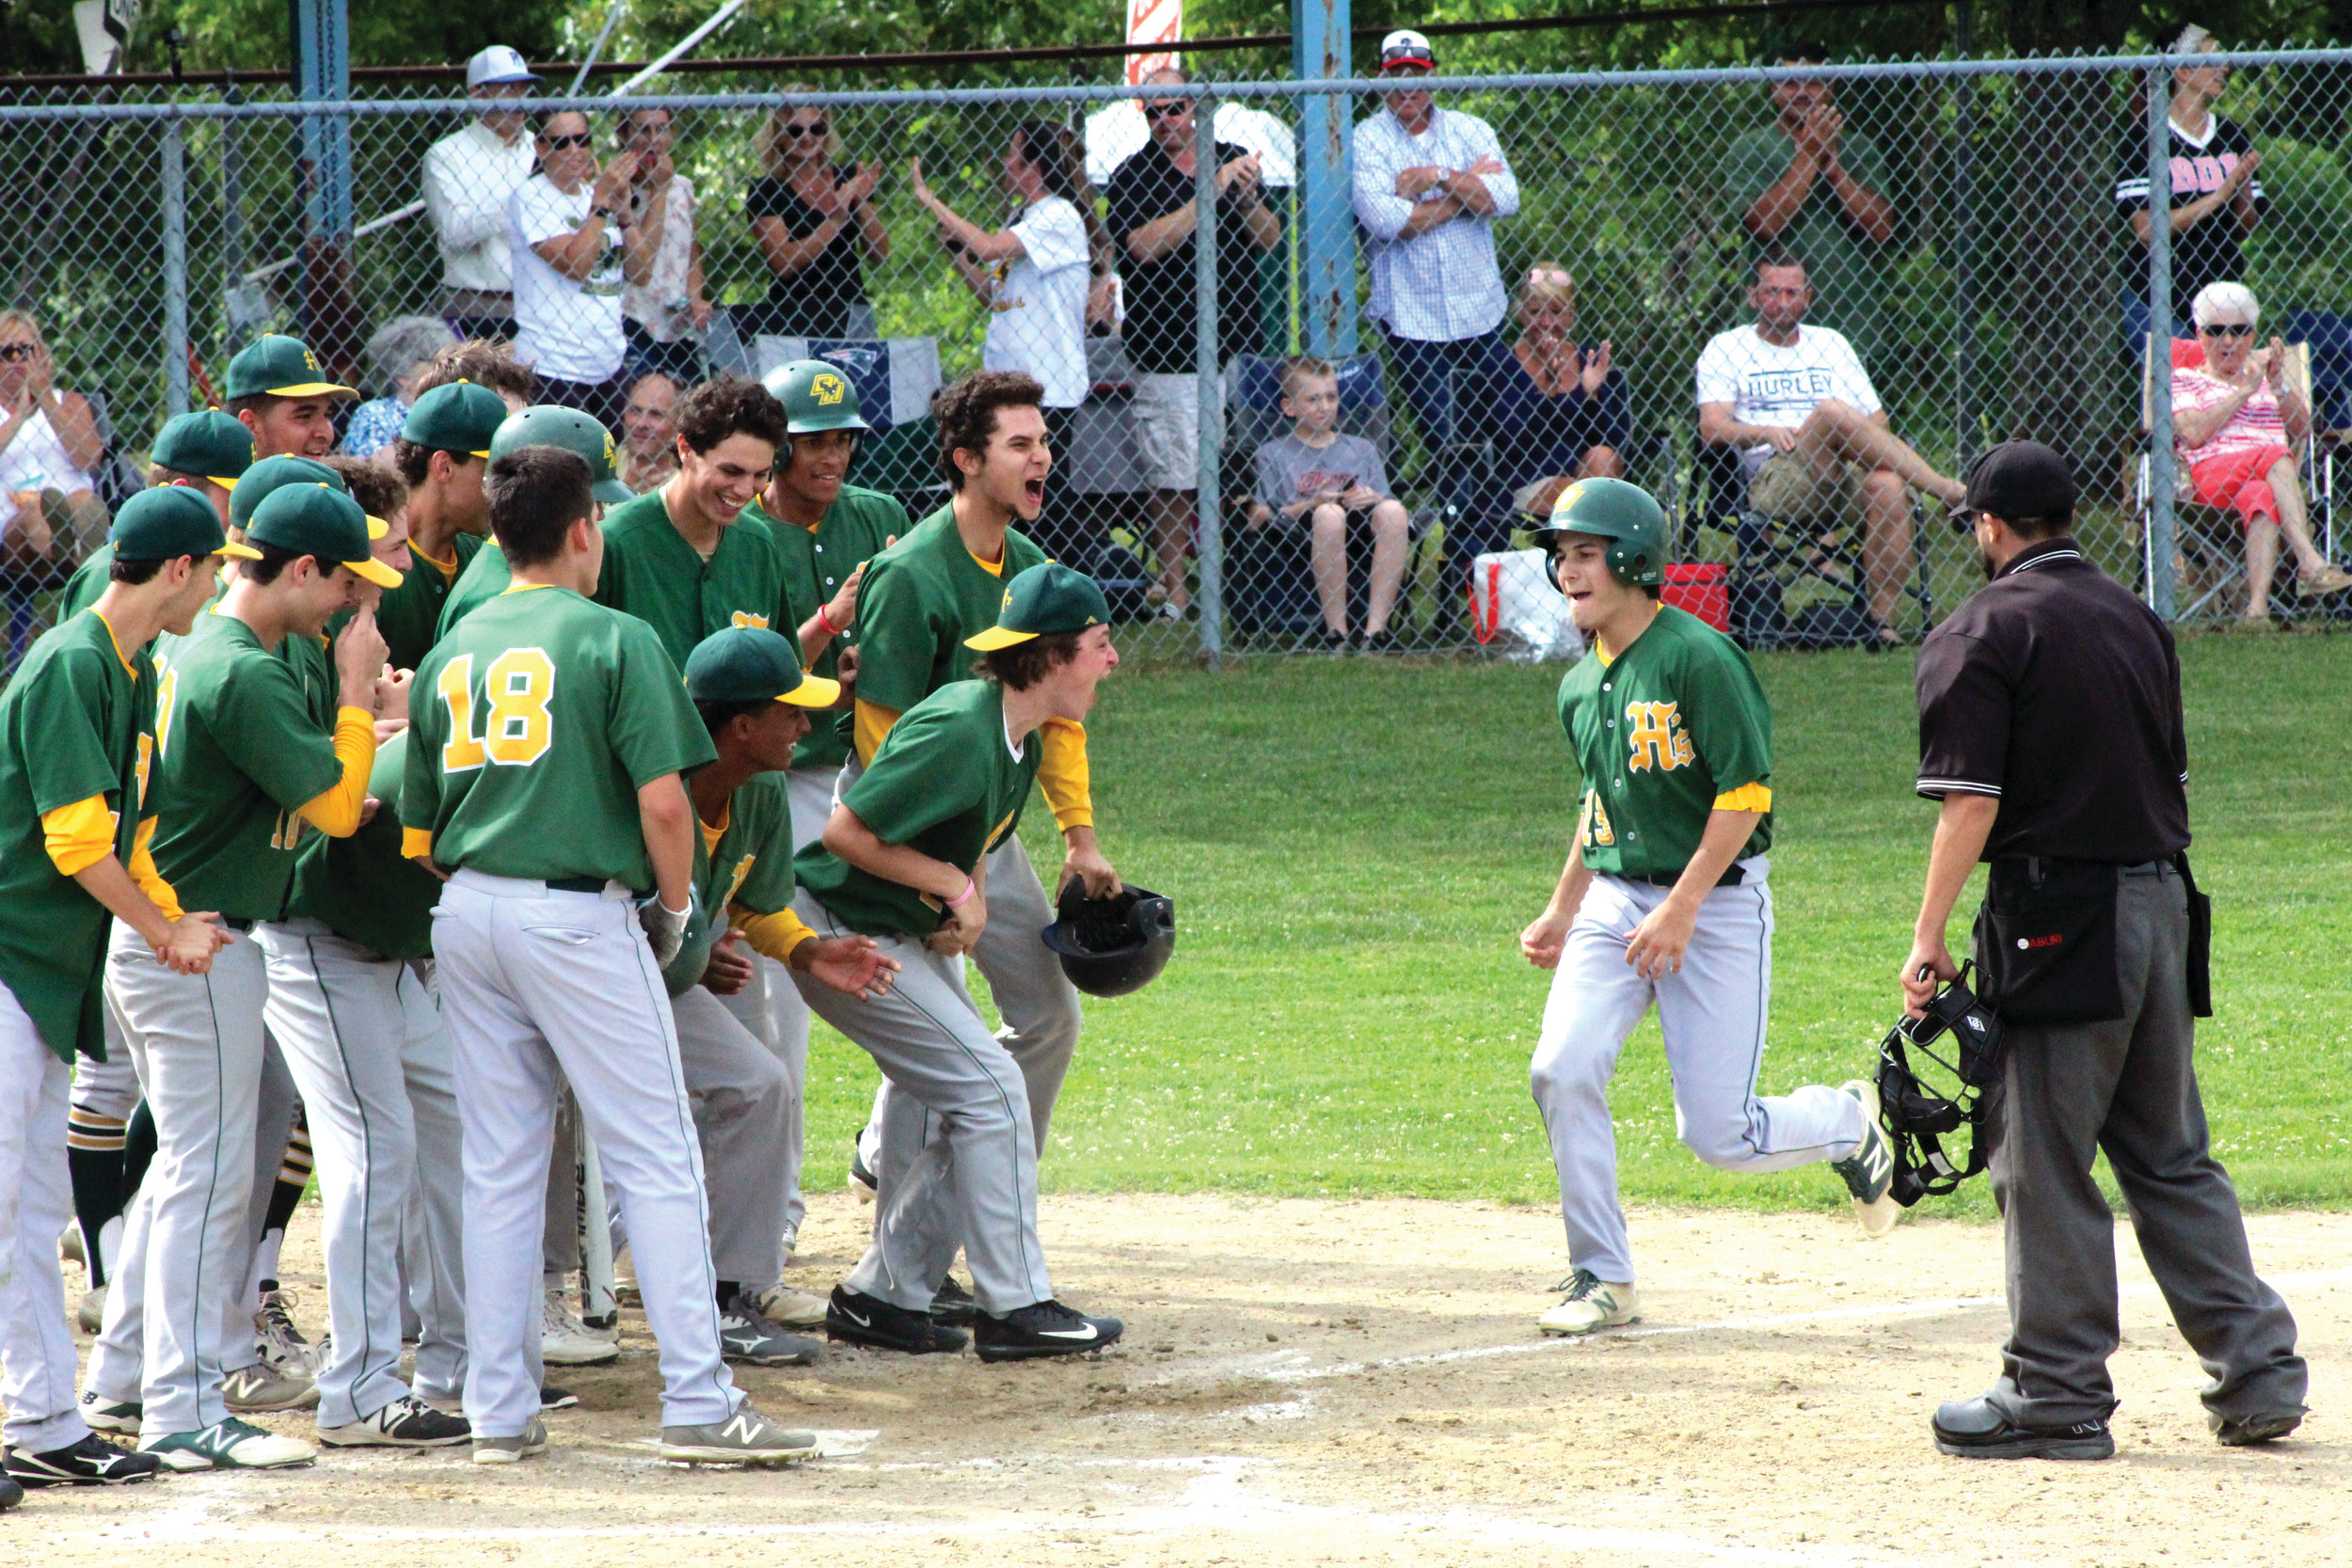 Josh Stravato is greeted by teammates at home plate after blasting a three-run home run in the second inning.